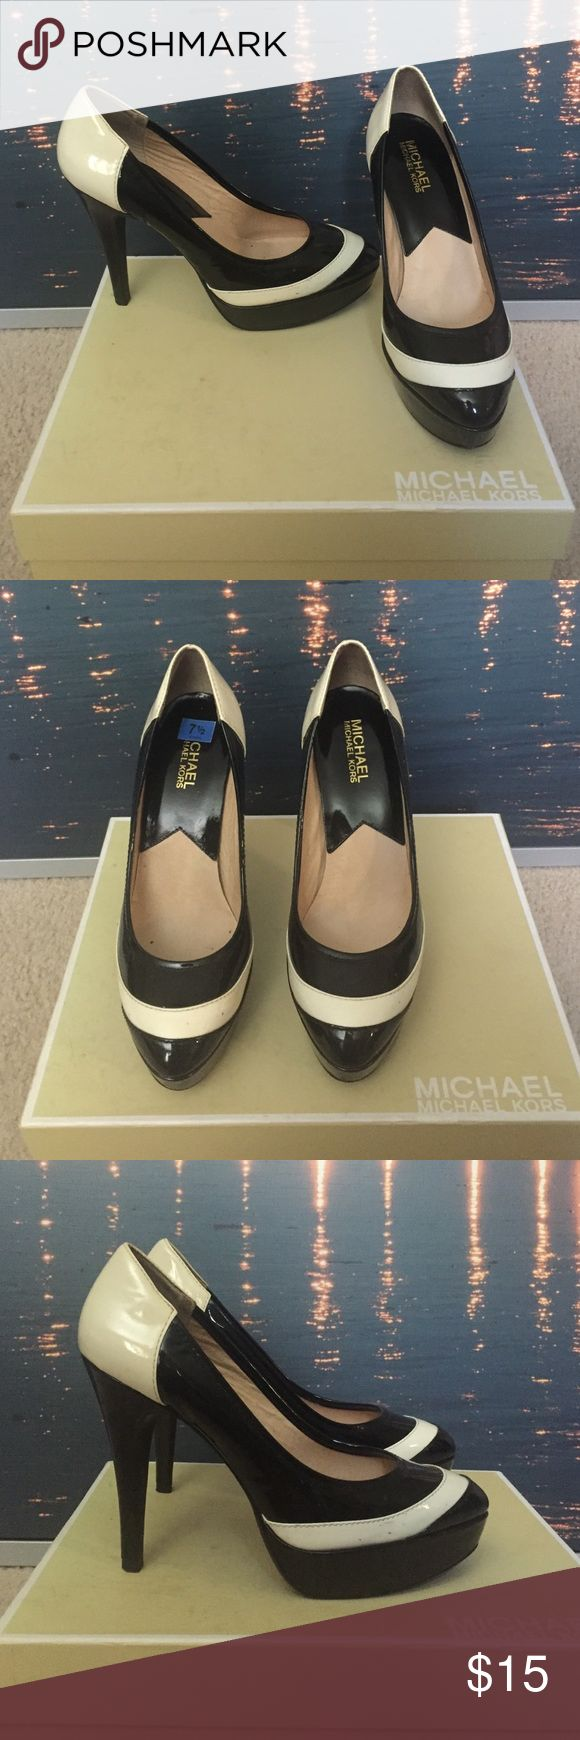 Michael Michael Kors Mclane Pump - Black & Cream Black and Cream Pumps, size 7 1/2, patent leather, some small scuff marks MICHAEL Michael Kors Shoes Heels